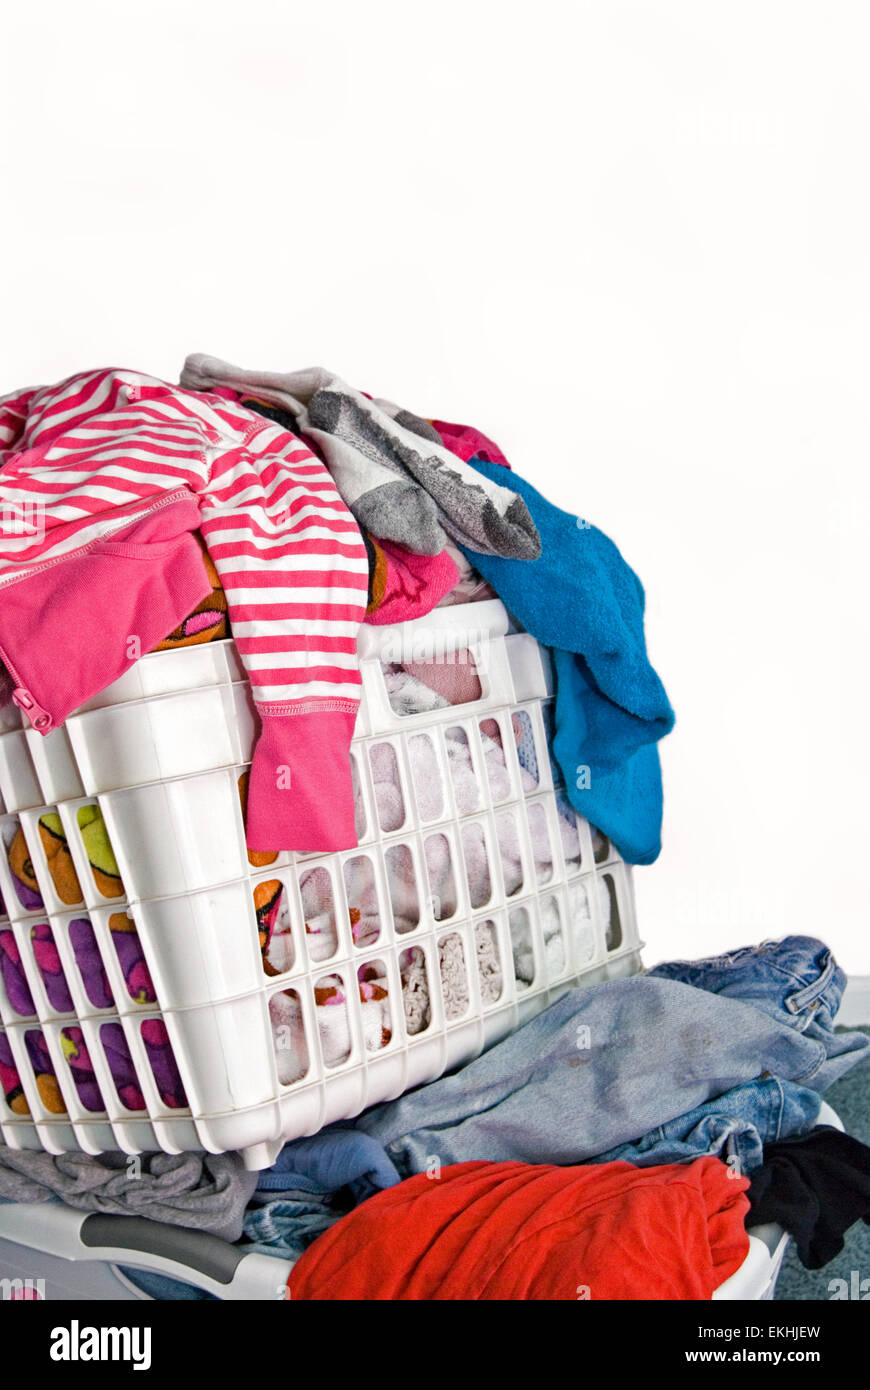 Pile of colorful clothes in a white laundry baskets isolated on white. - Stock Image